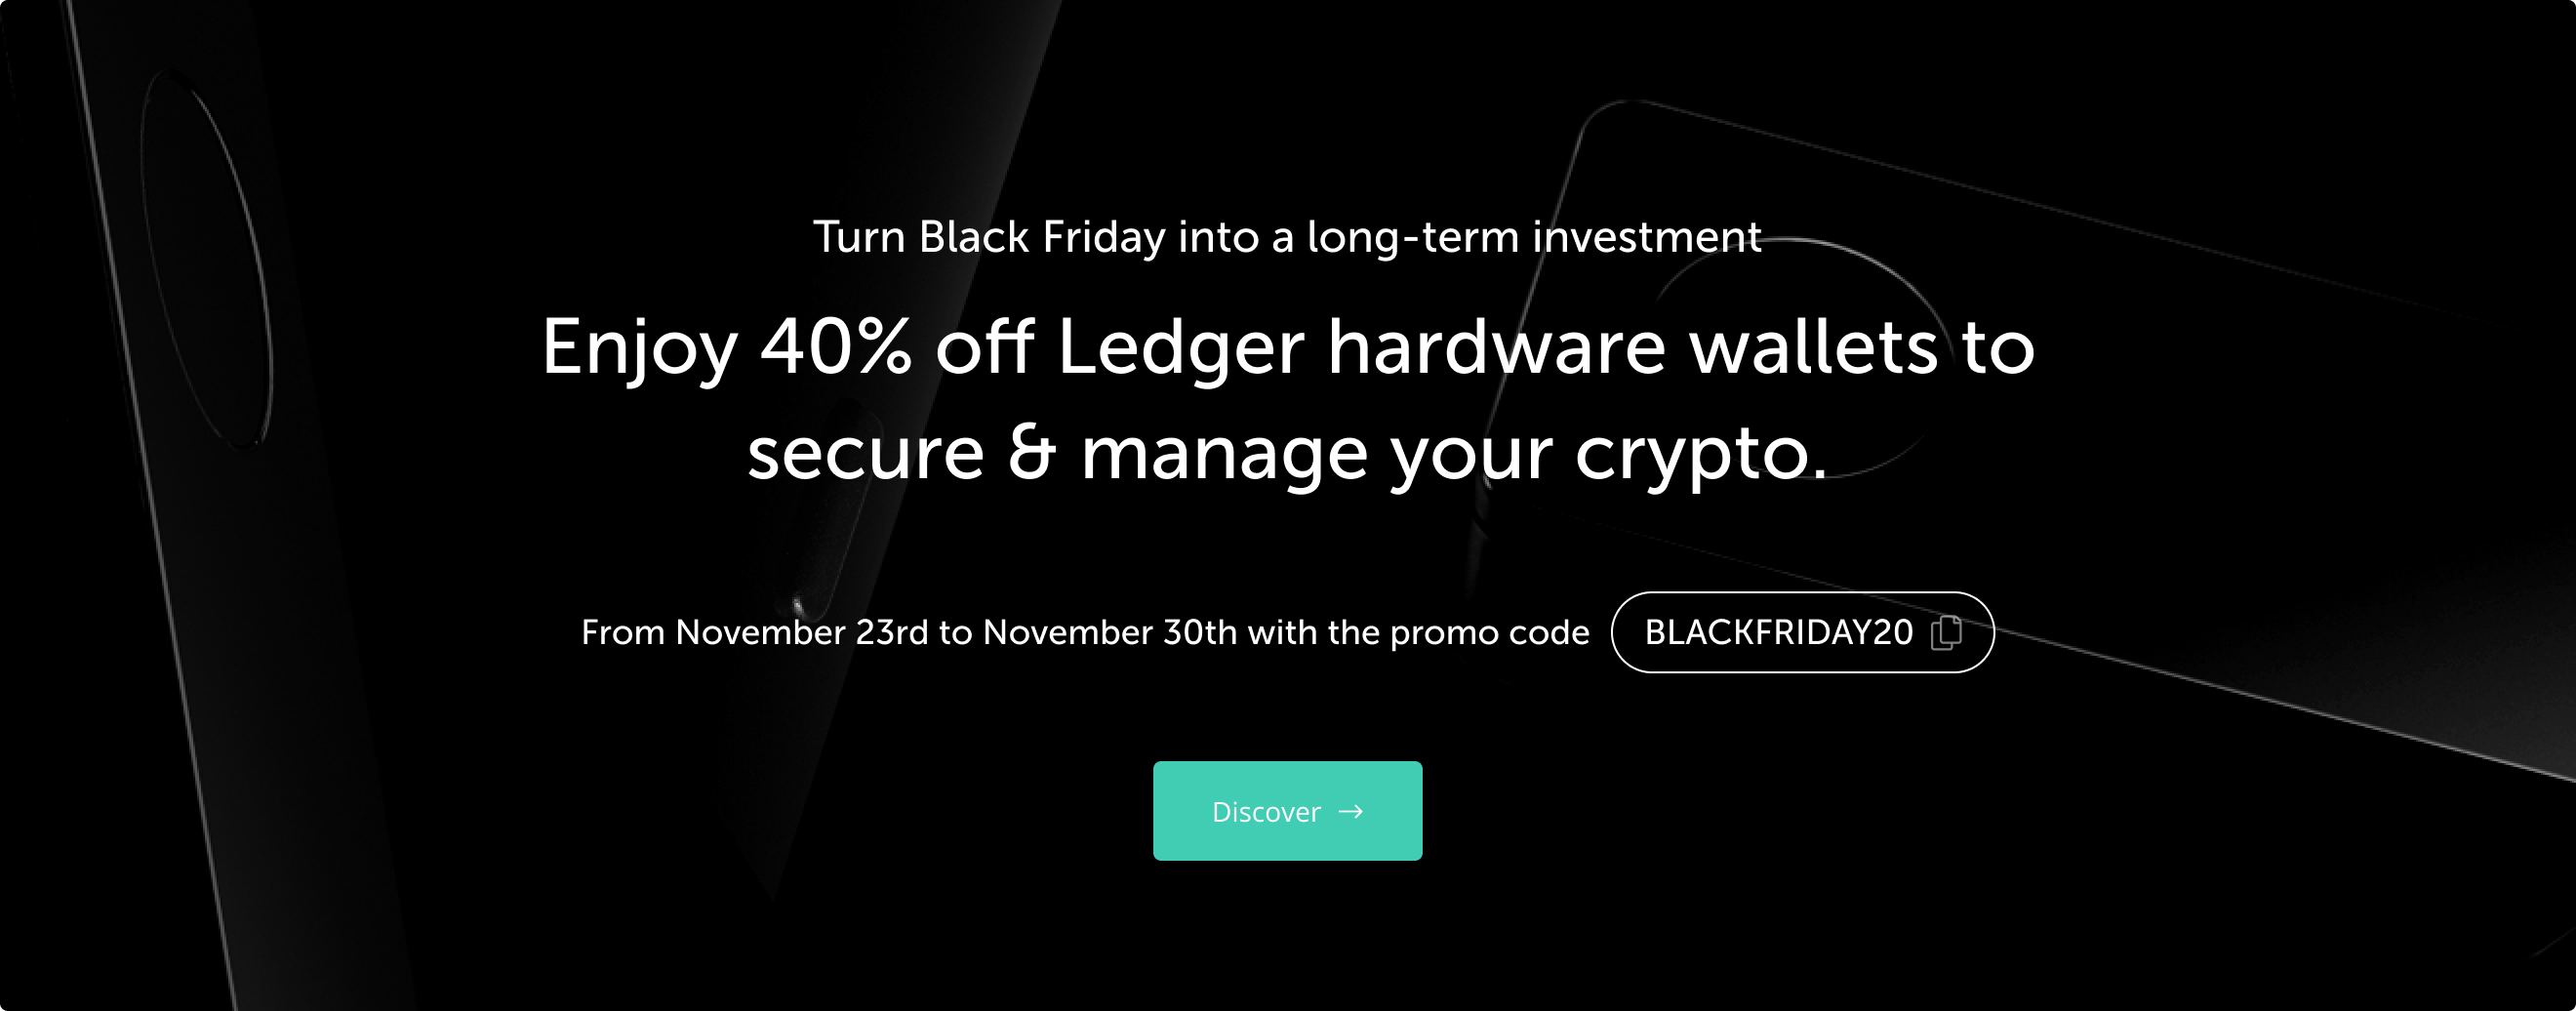 Enjoy 40% off Ledger hardware wallets